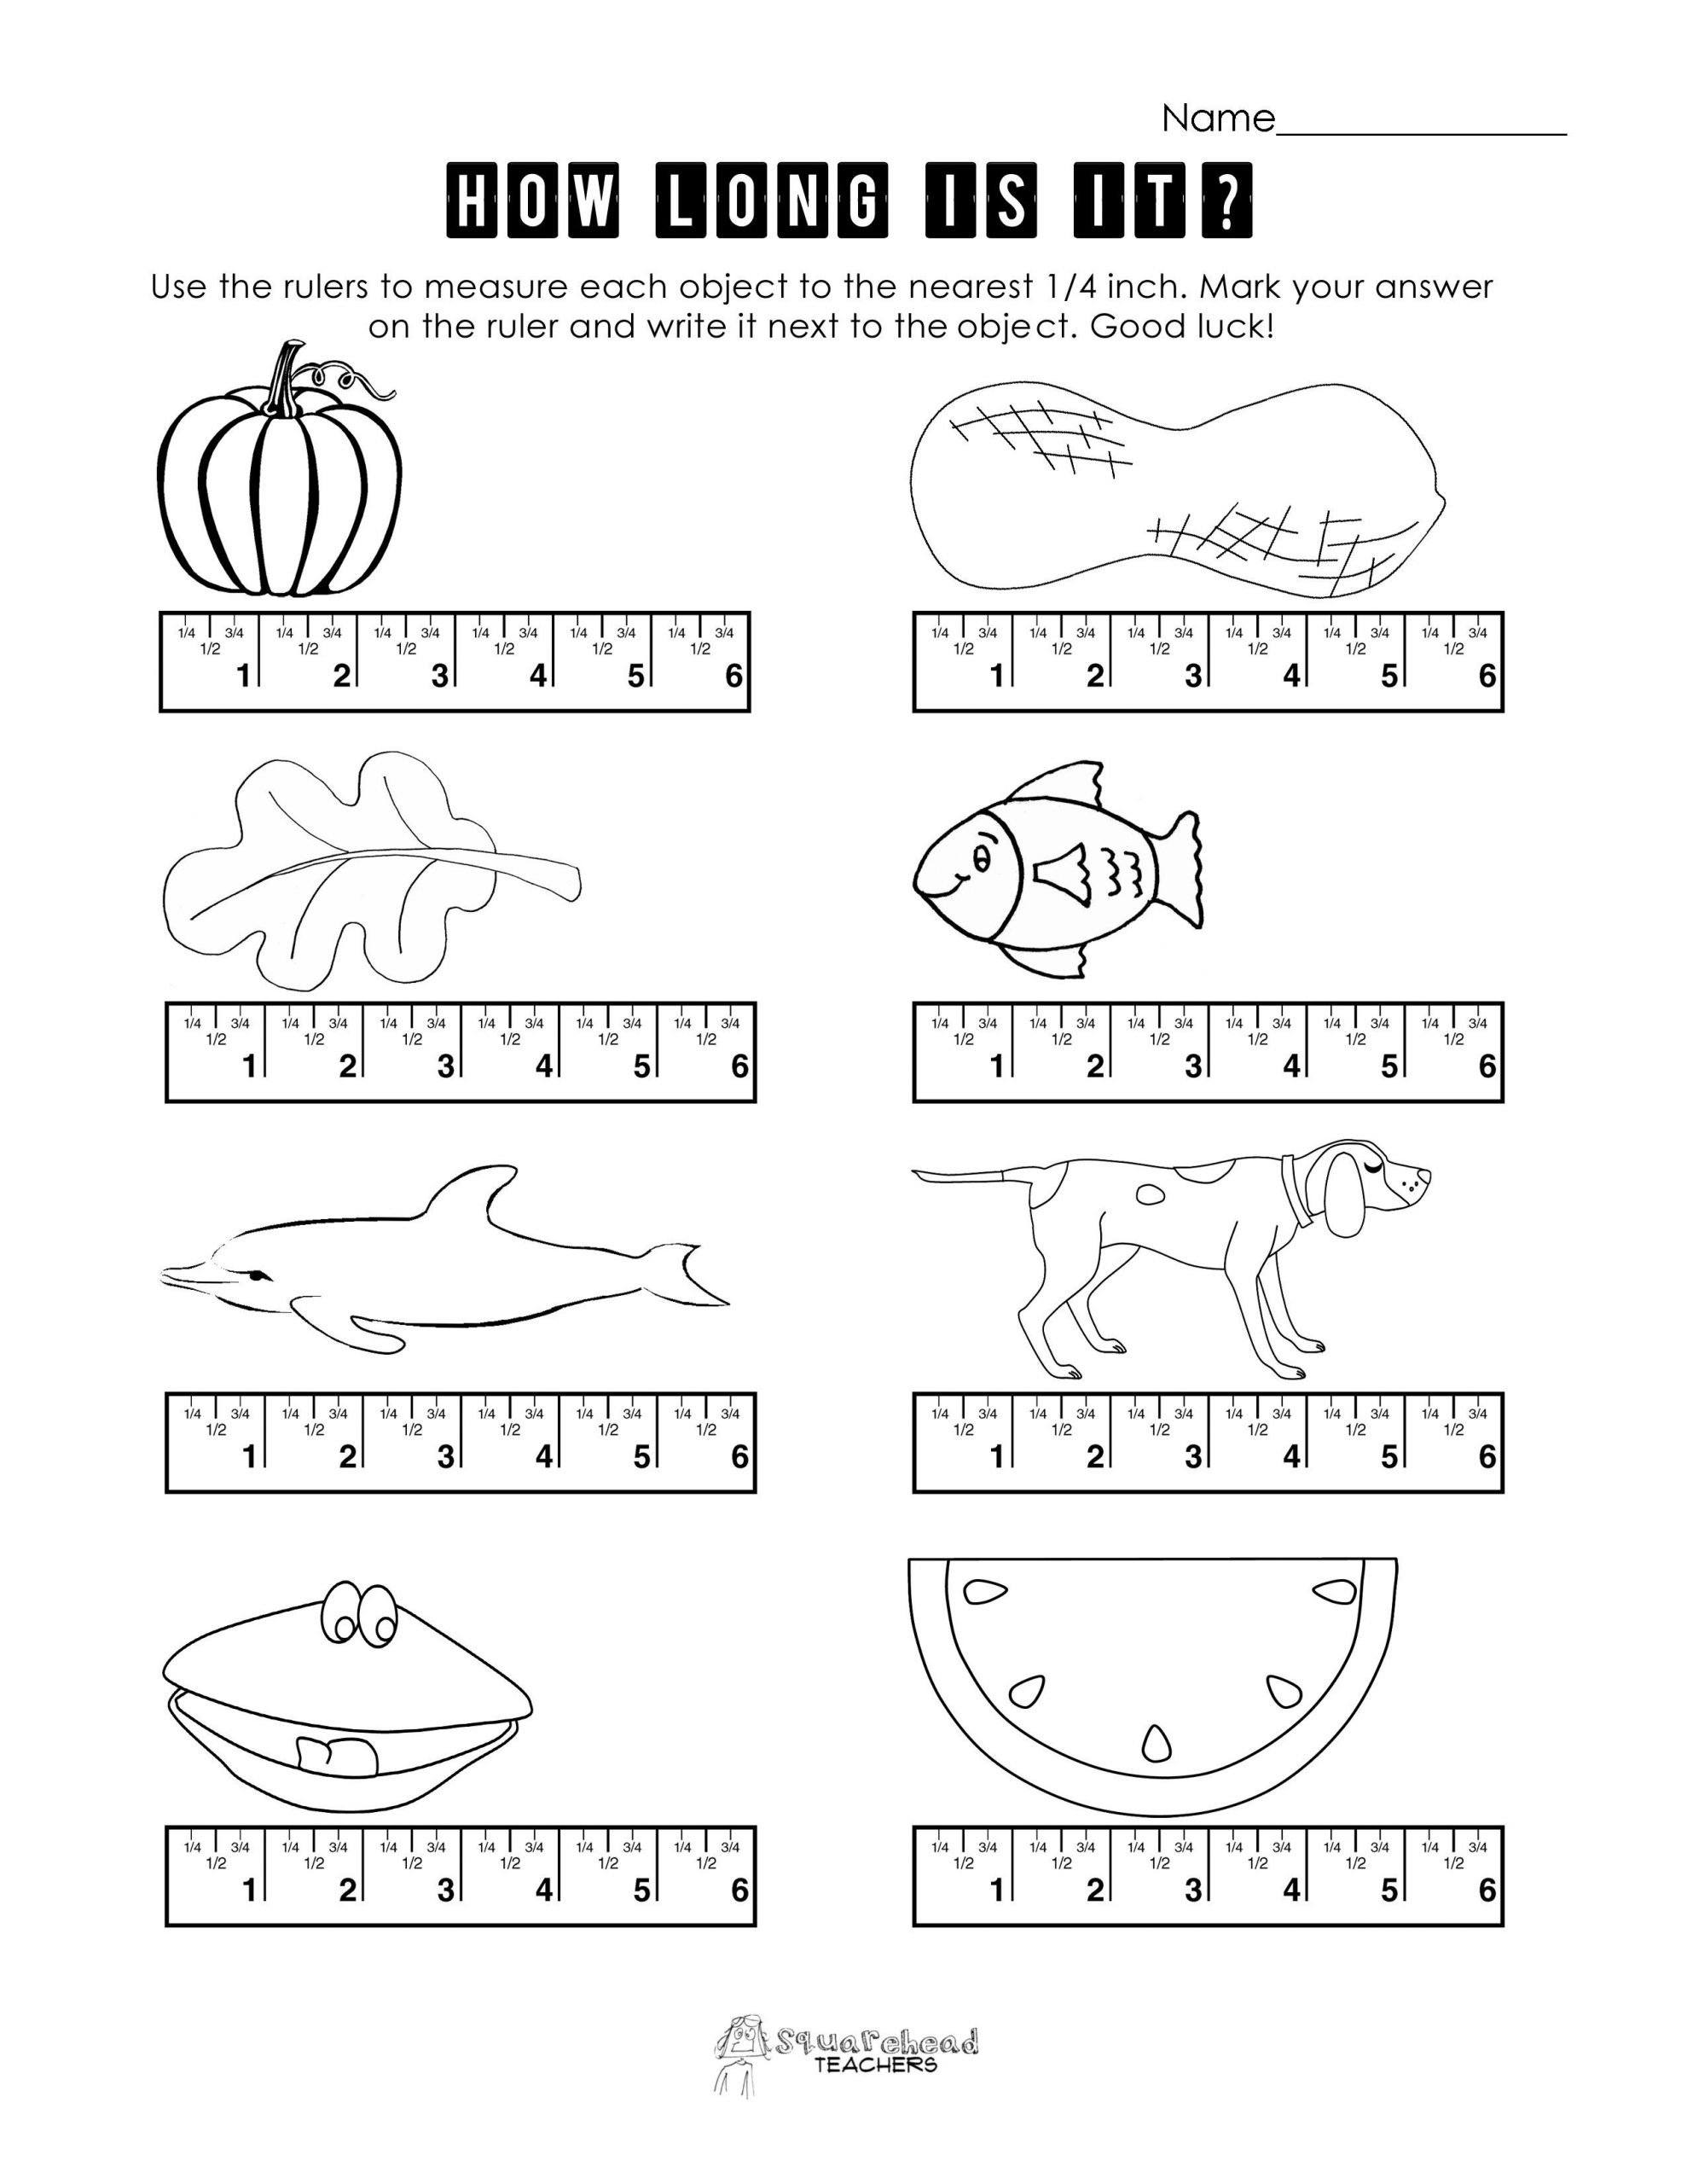 Reading Scales Worksheets Ruler Measuring Worksheets Google Search